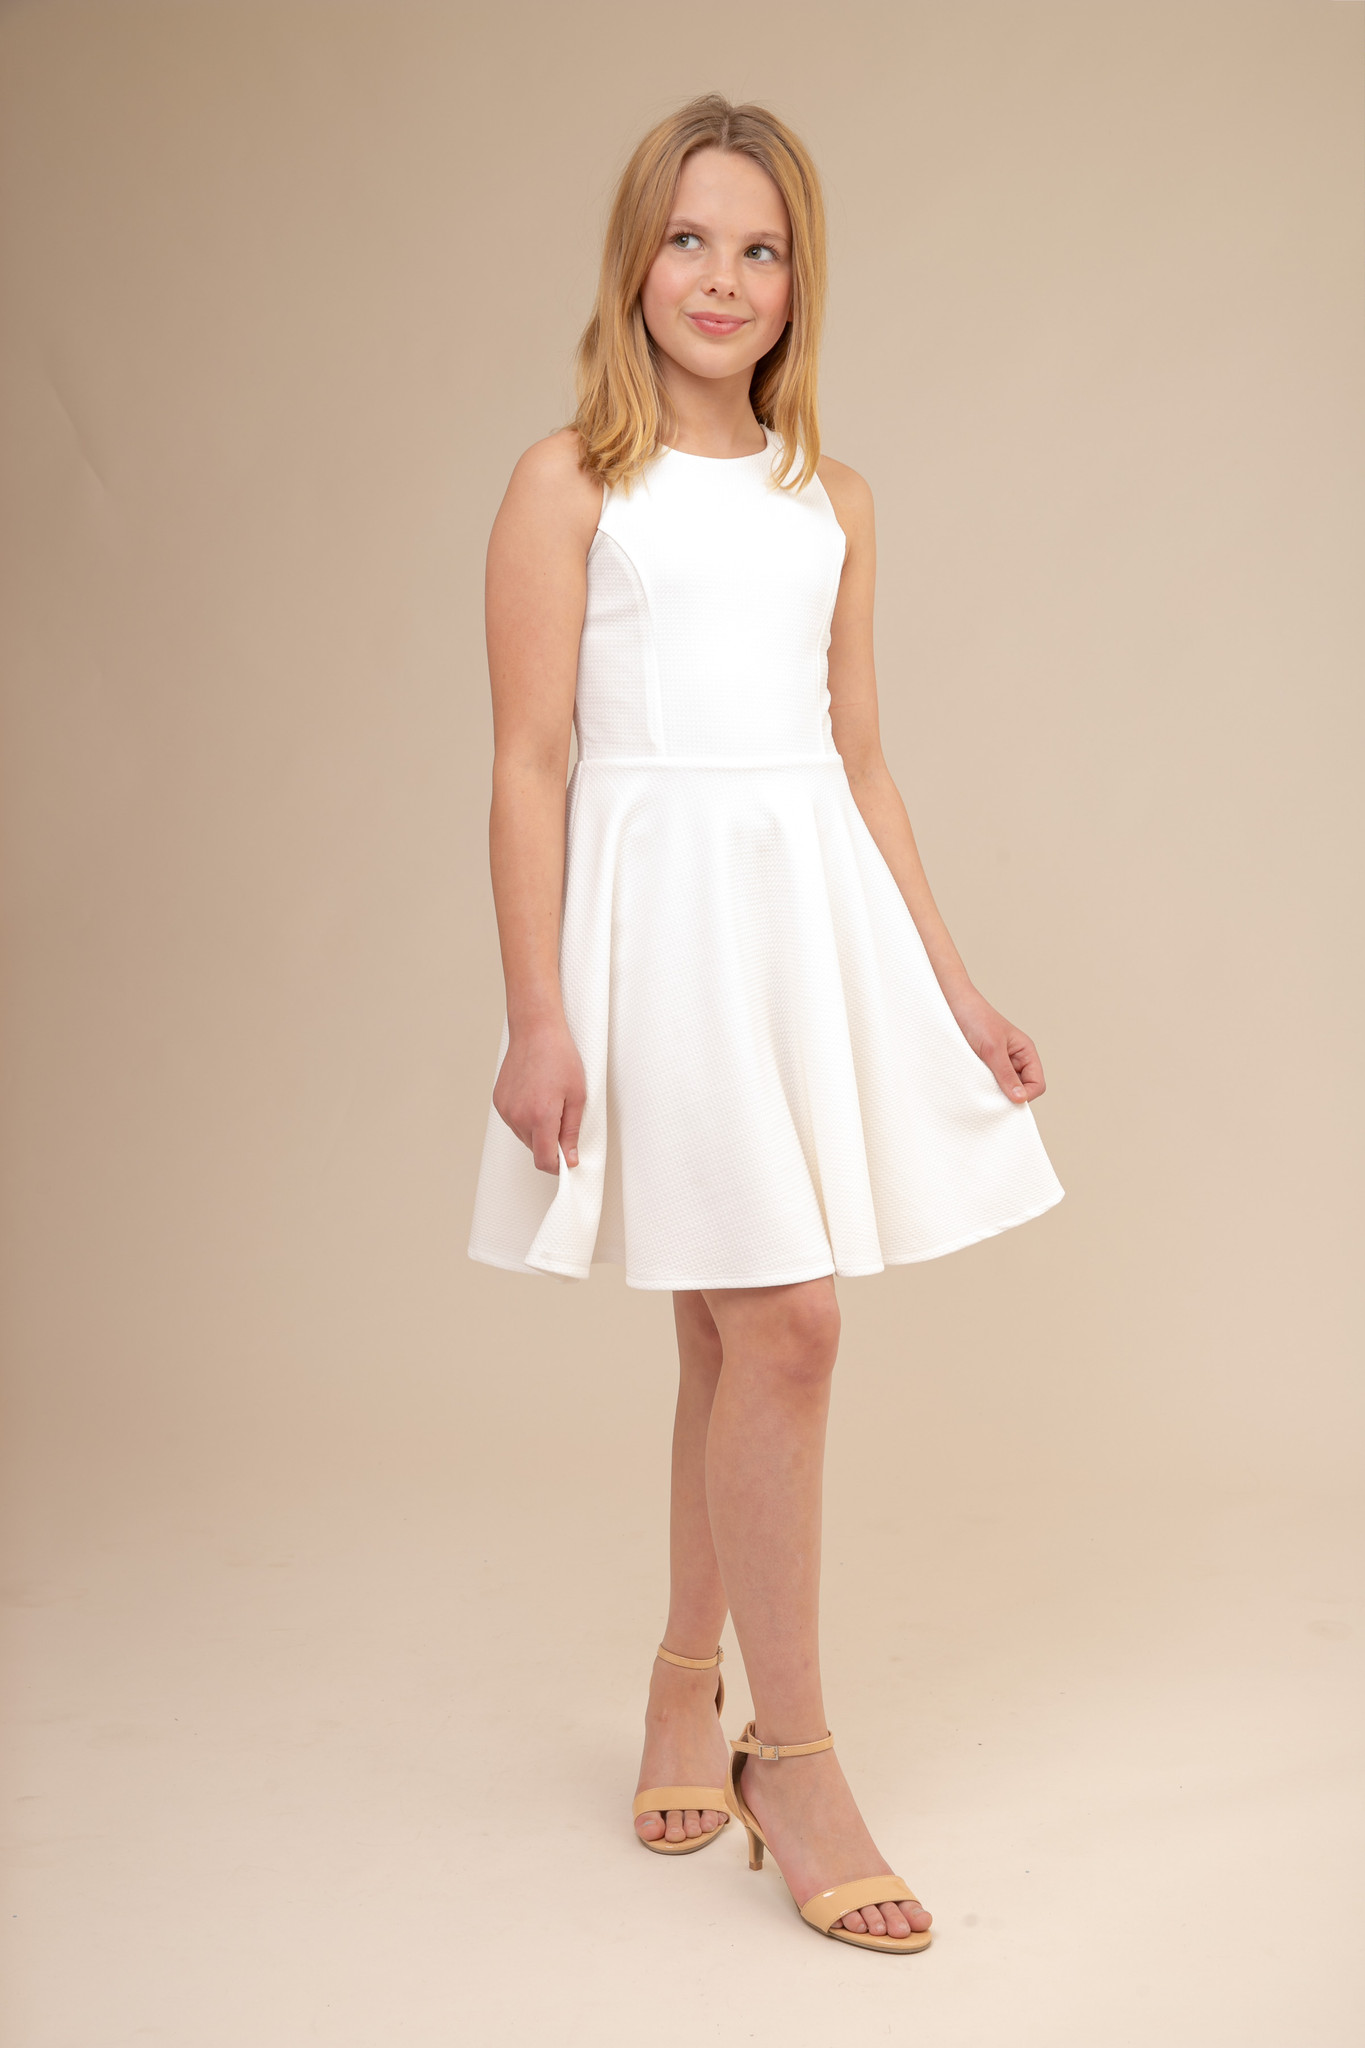 Ivory Textured Racer Back Dress in Longer Length.